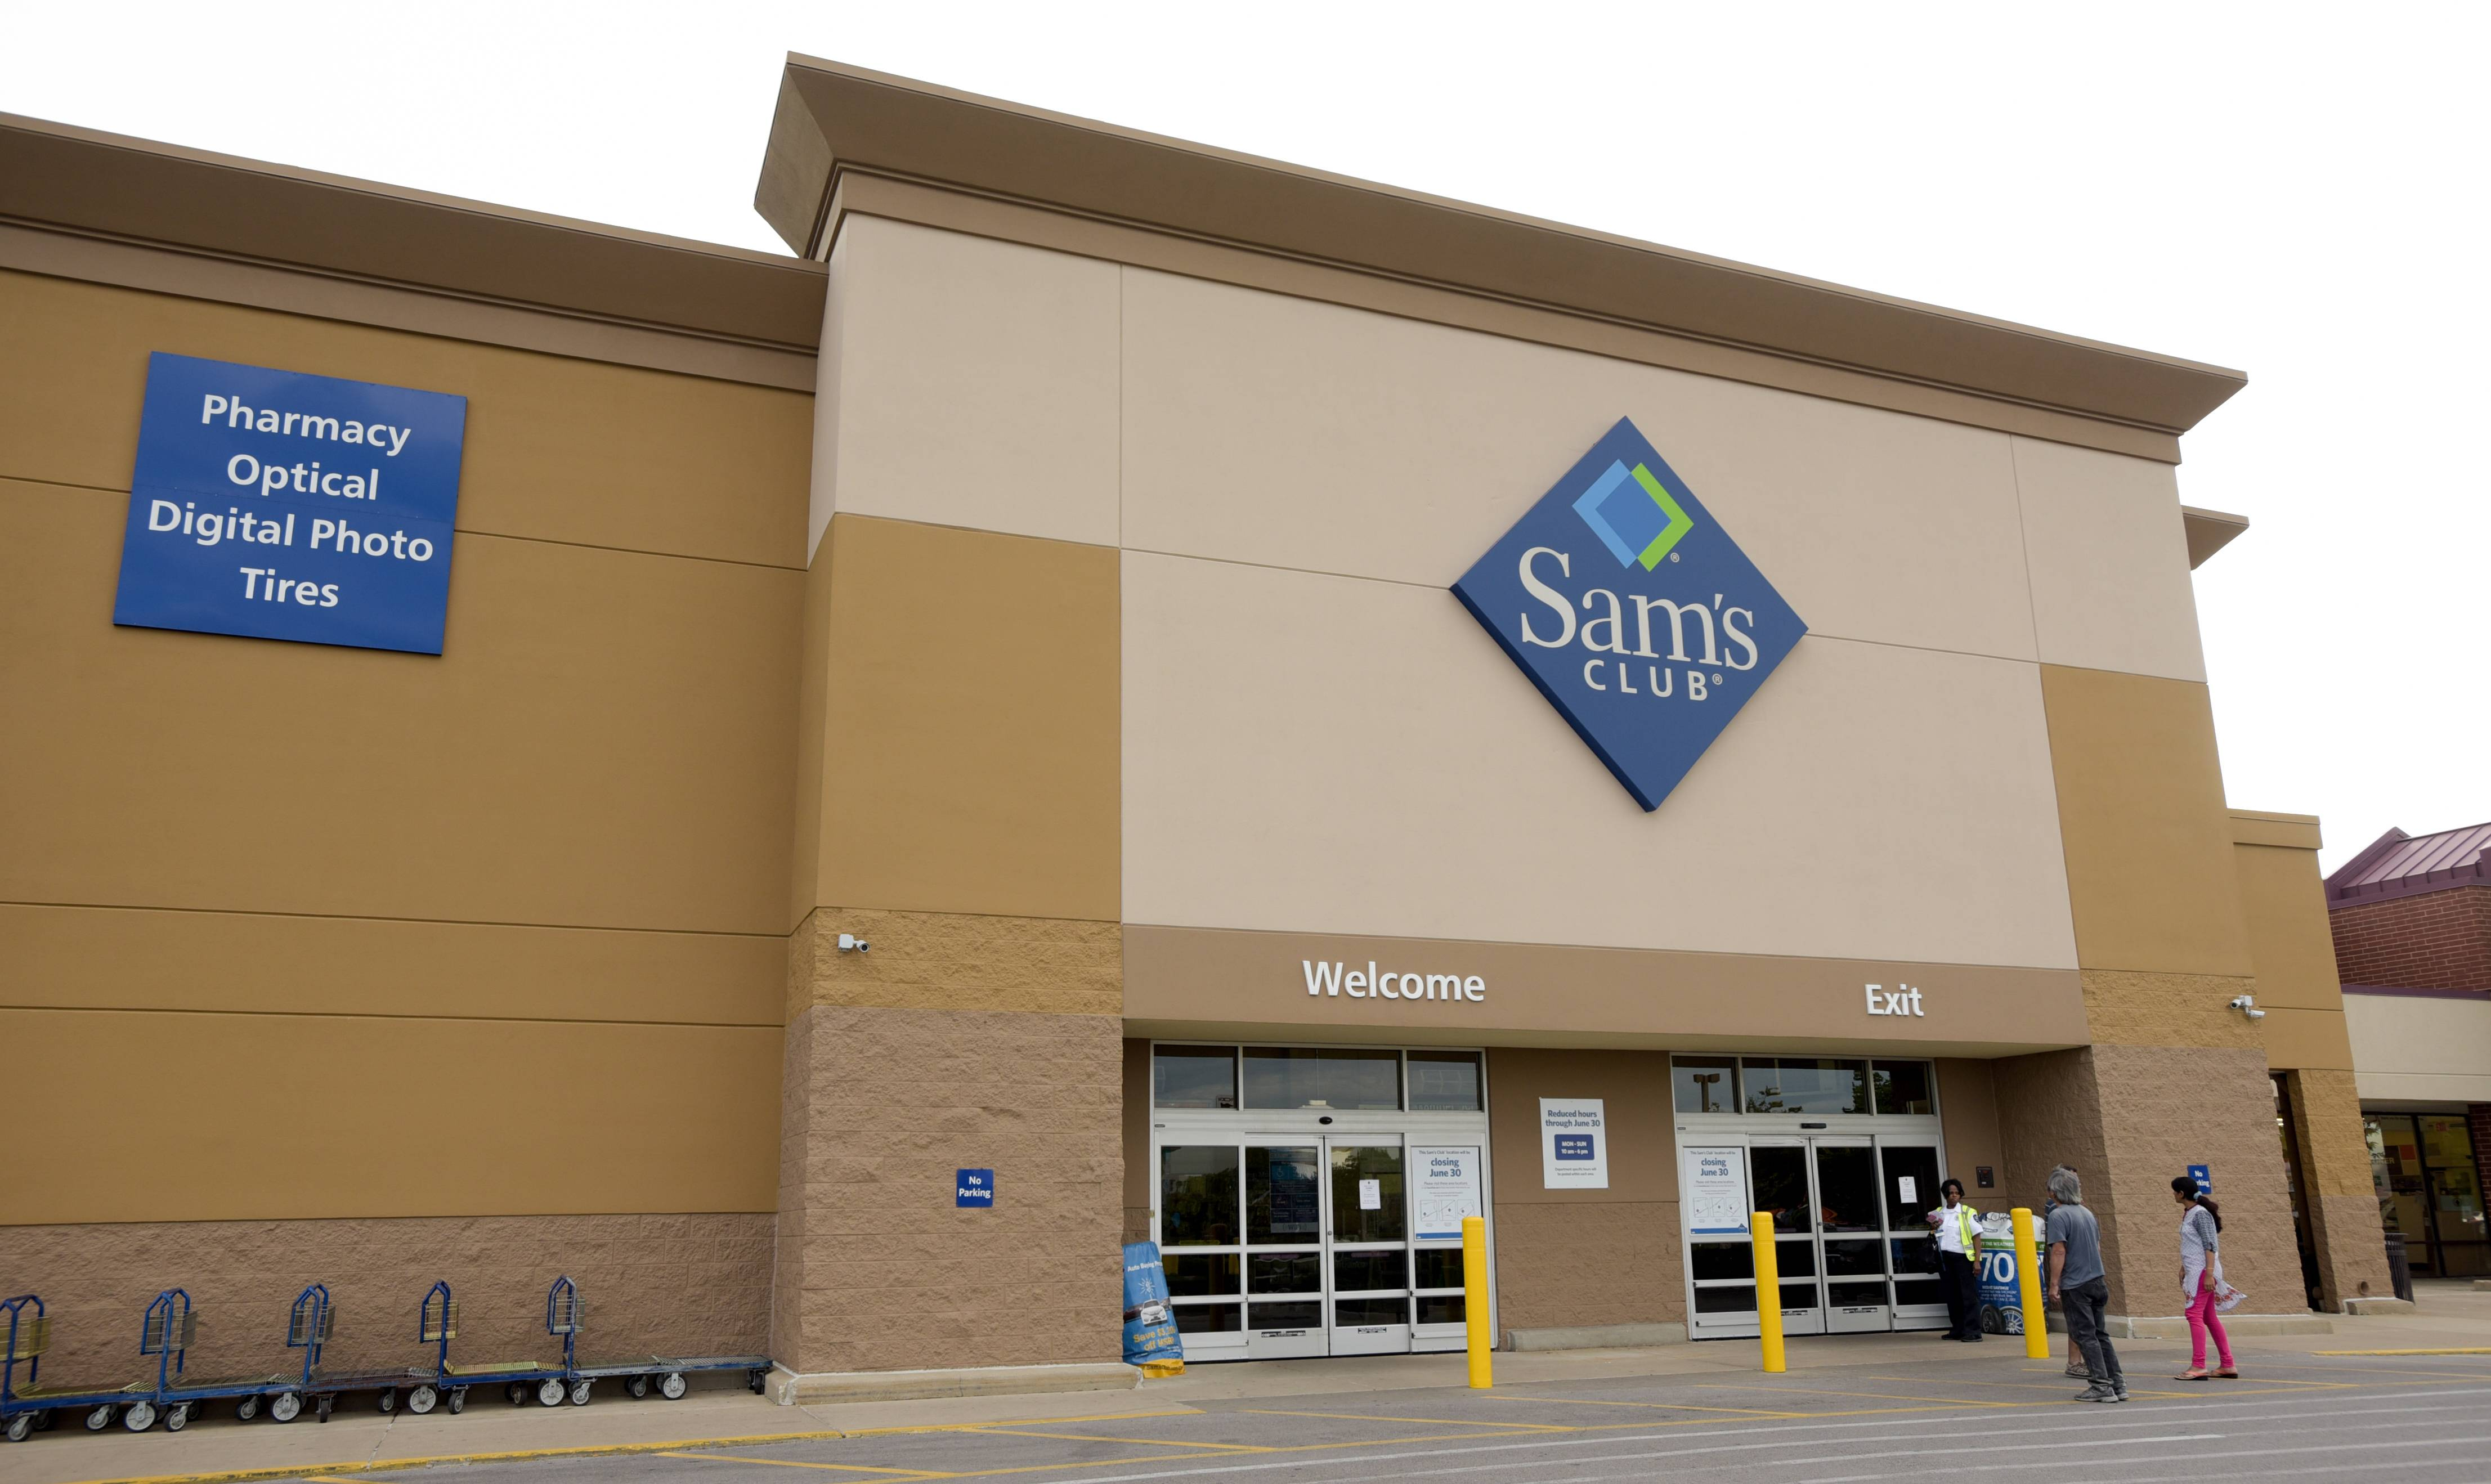 Woodridge officials said they learned only Wednesday that the Sam's Club in town was to close June 30.